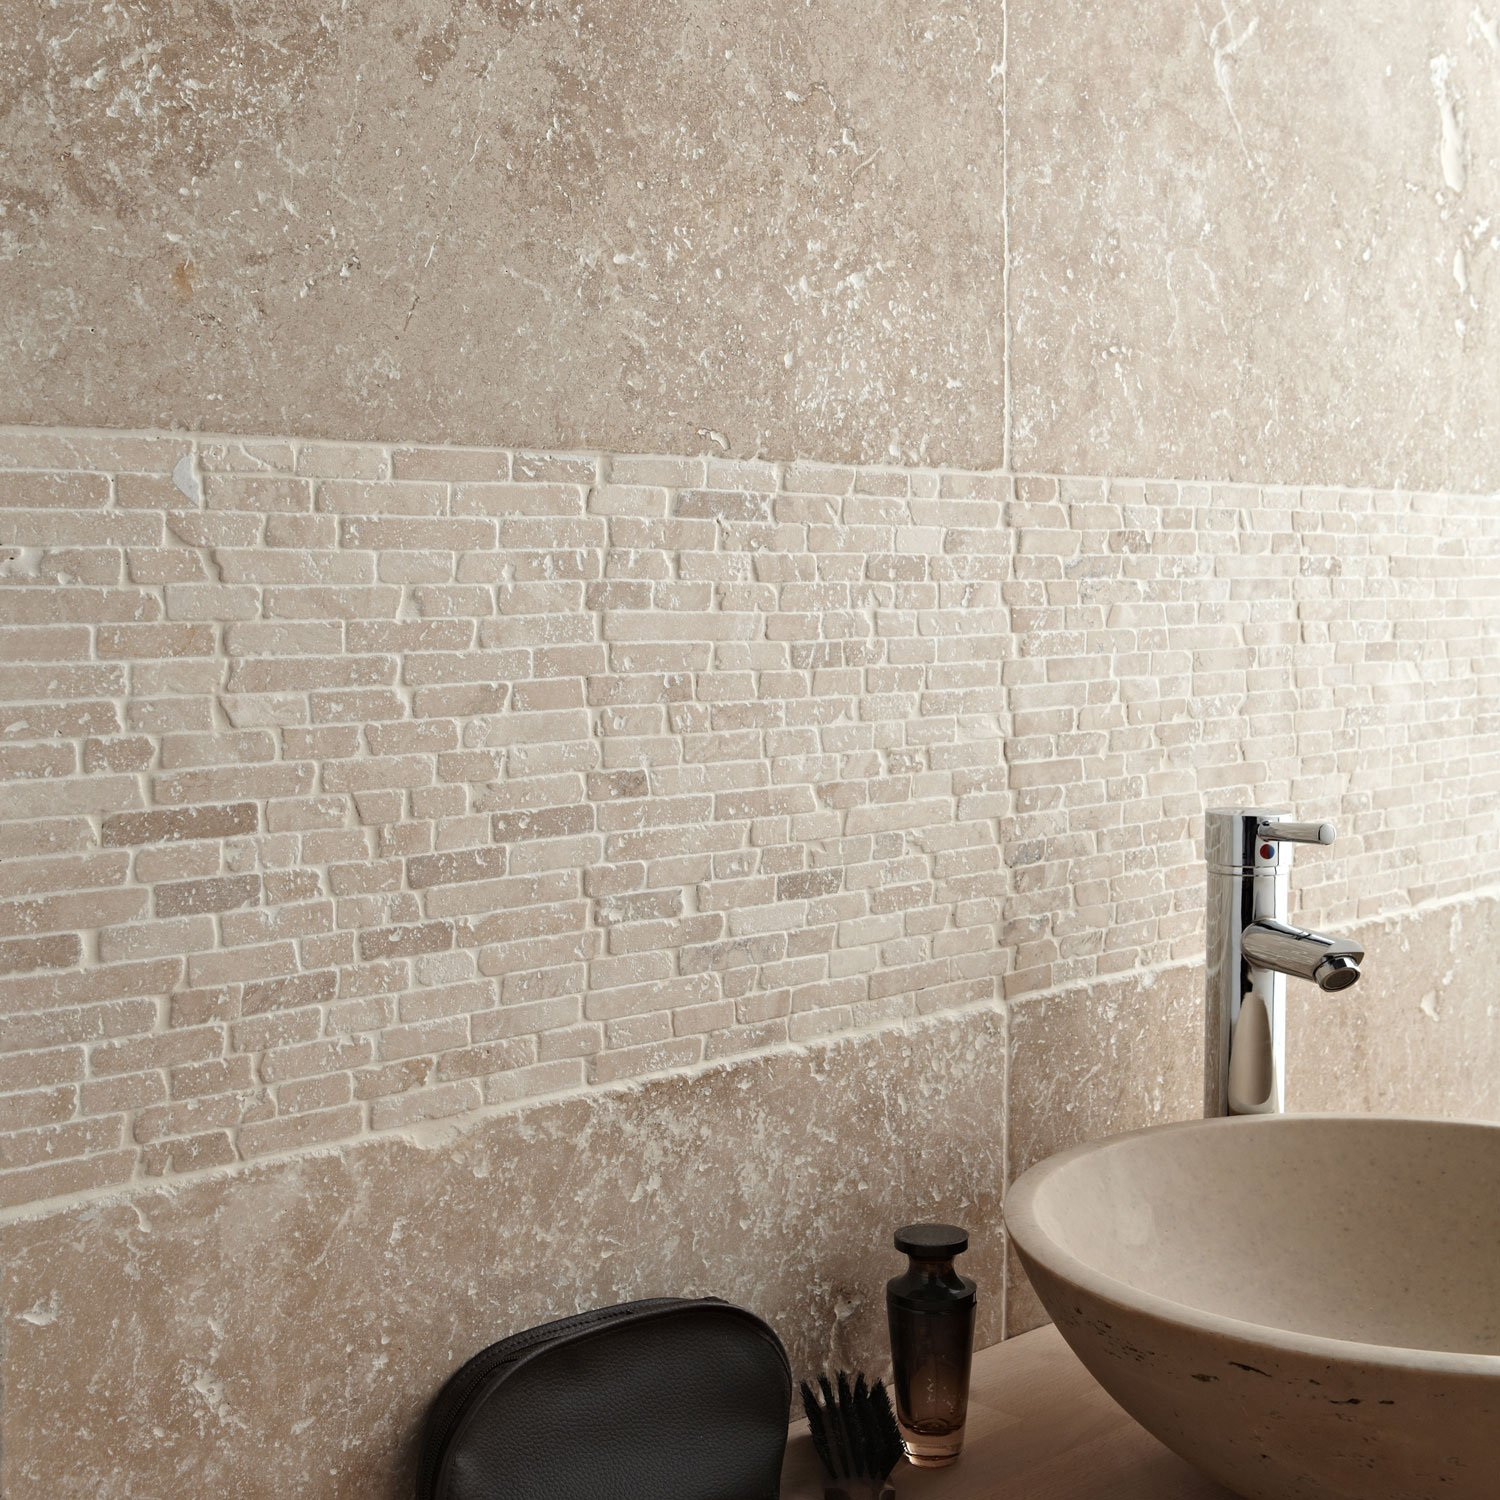 Joint Carrelage Salle De Bain Point P ~ Travertin Sol Et Mur Beige Effet Pierre Travertin L 40 6 X L 61 Cm